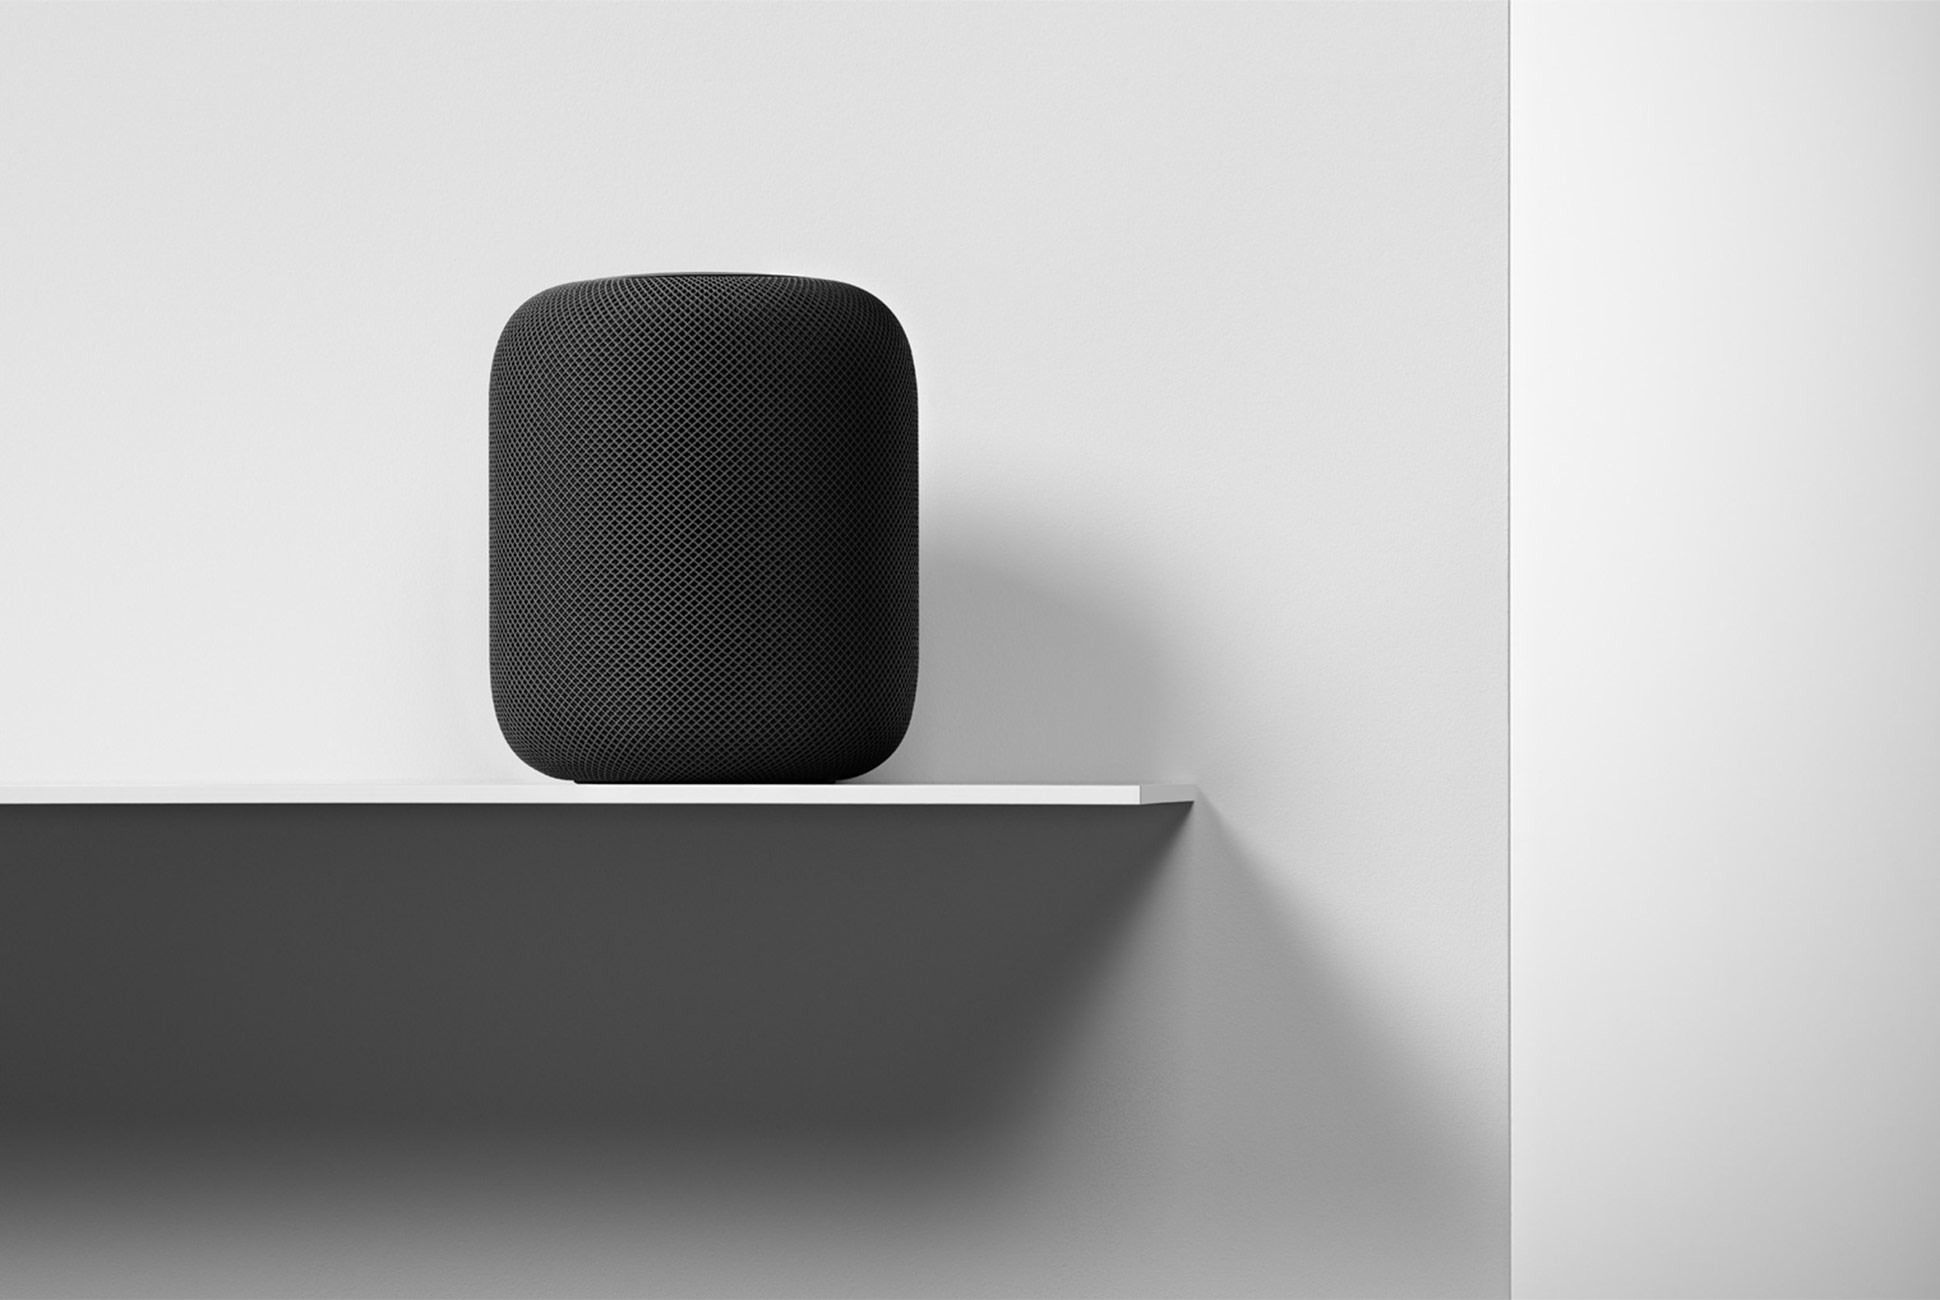 Photo of the HomePod